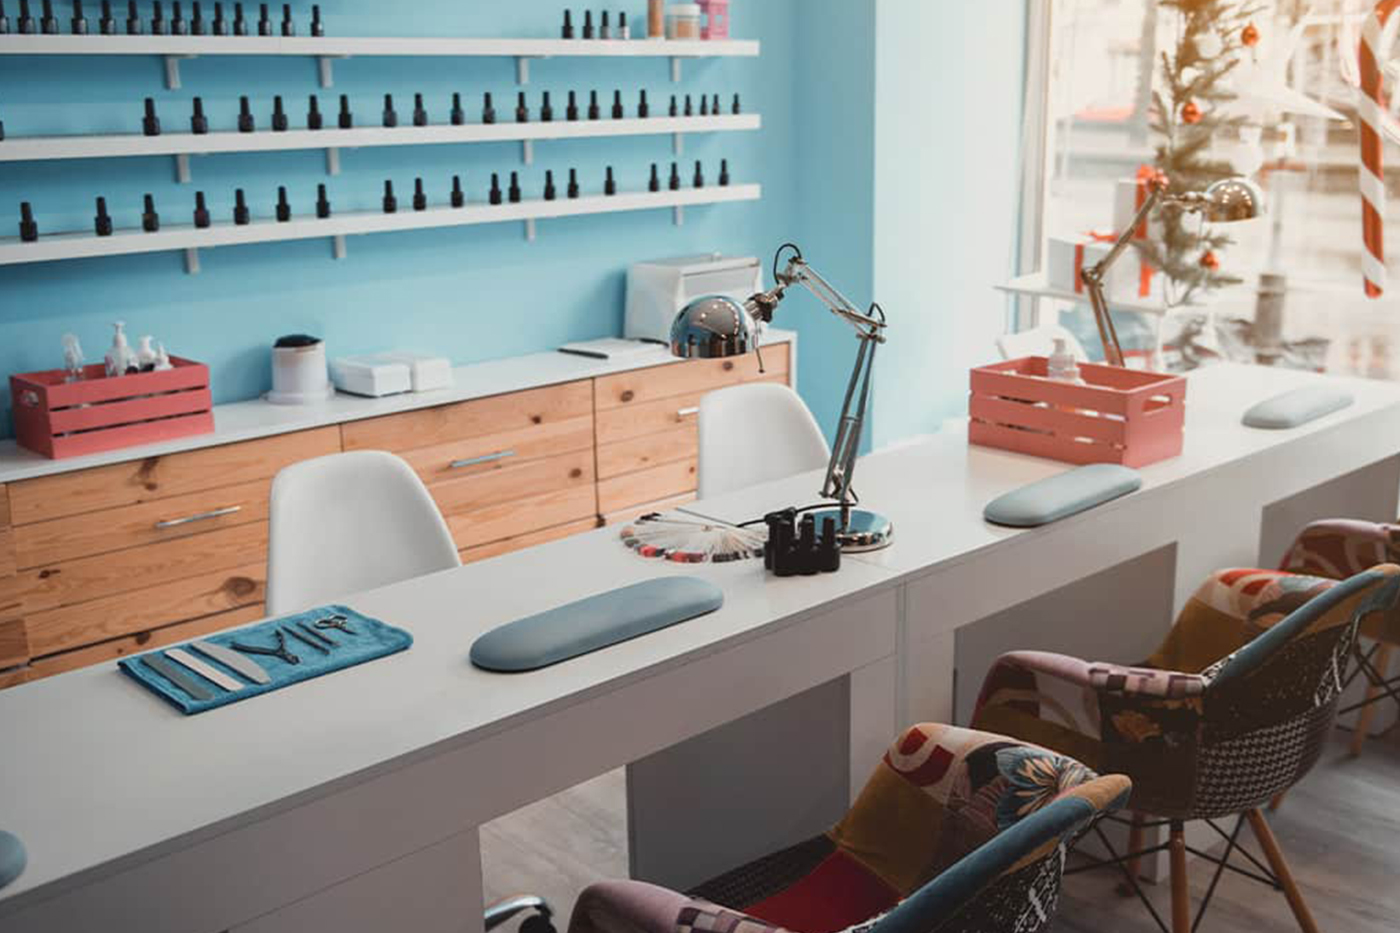 Nail salons in California to shut down temporarily